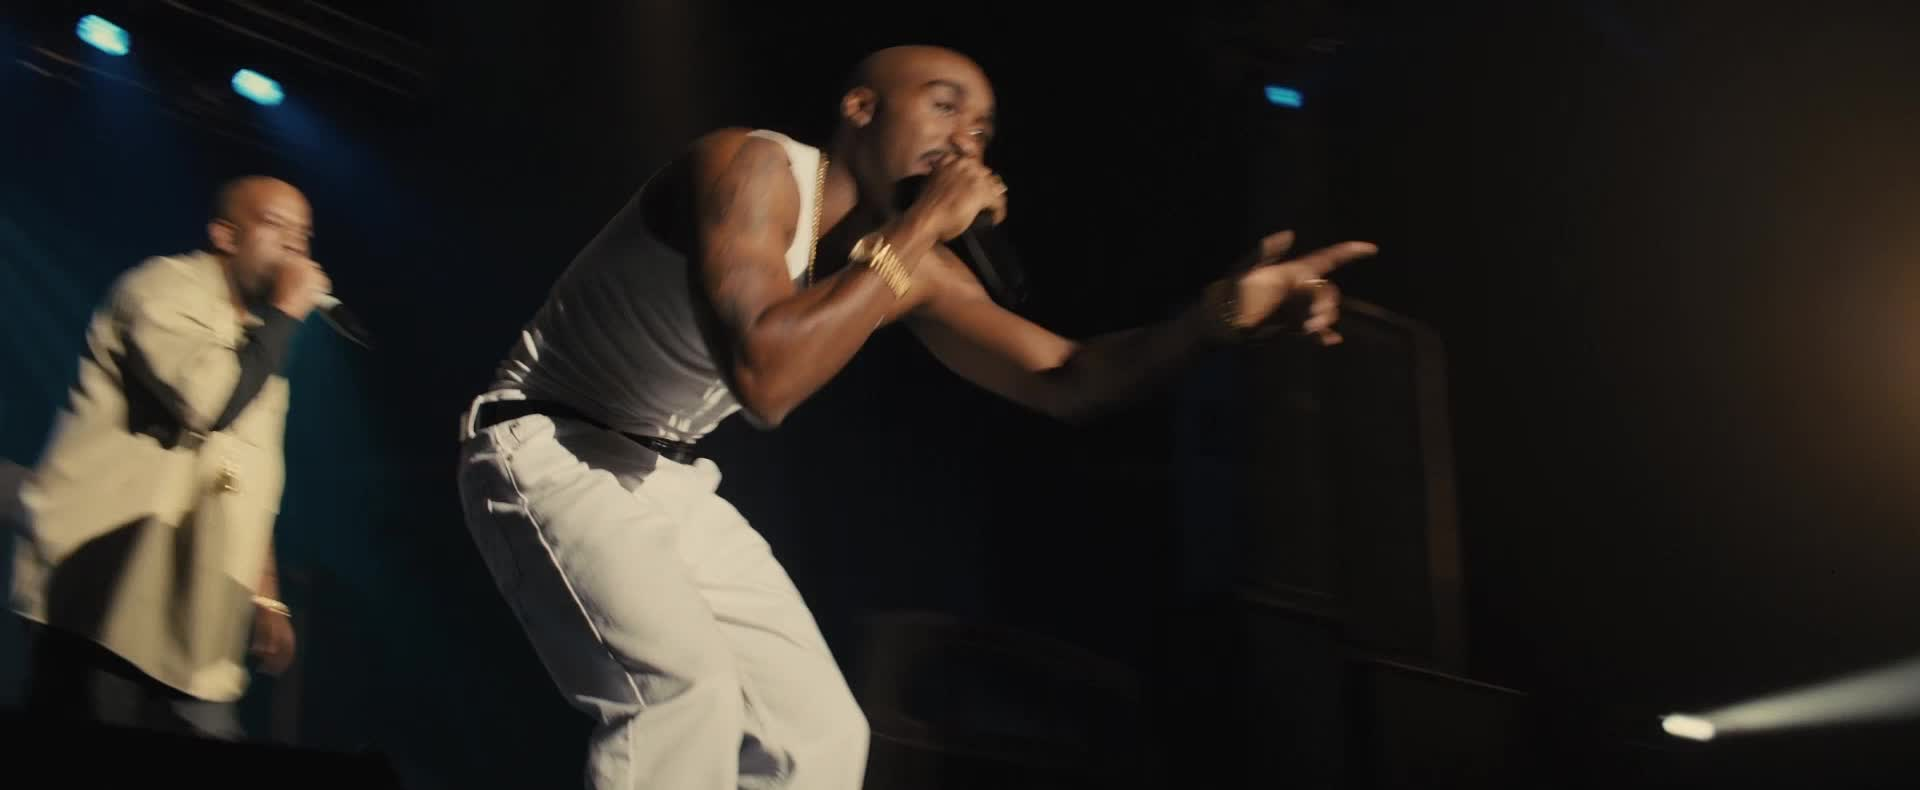 2pac, All Eyez On Me, AllEyezOnMe, Lionsgate, Tupac, all eyez on me, alleyezonme, lionsgate, movie, tupac, stage dancing GIFs